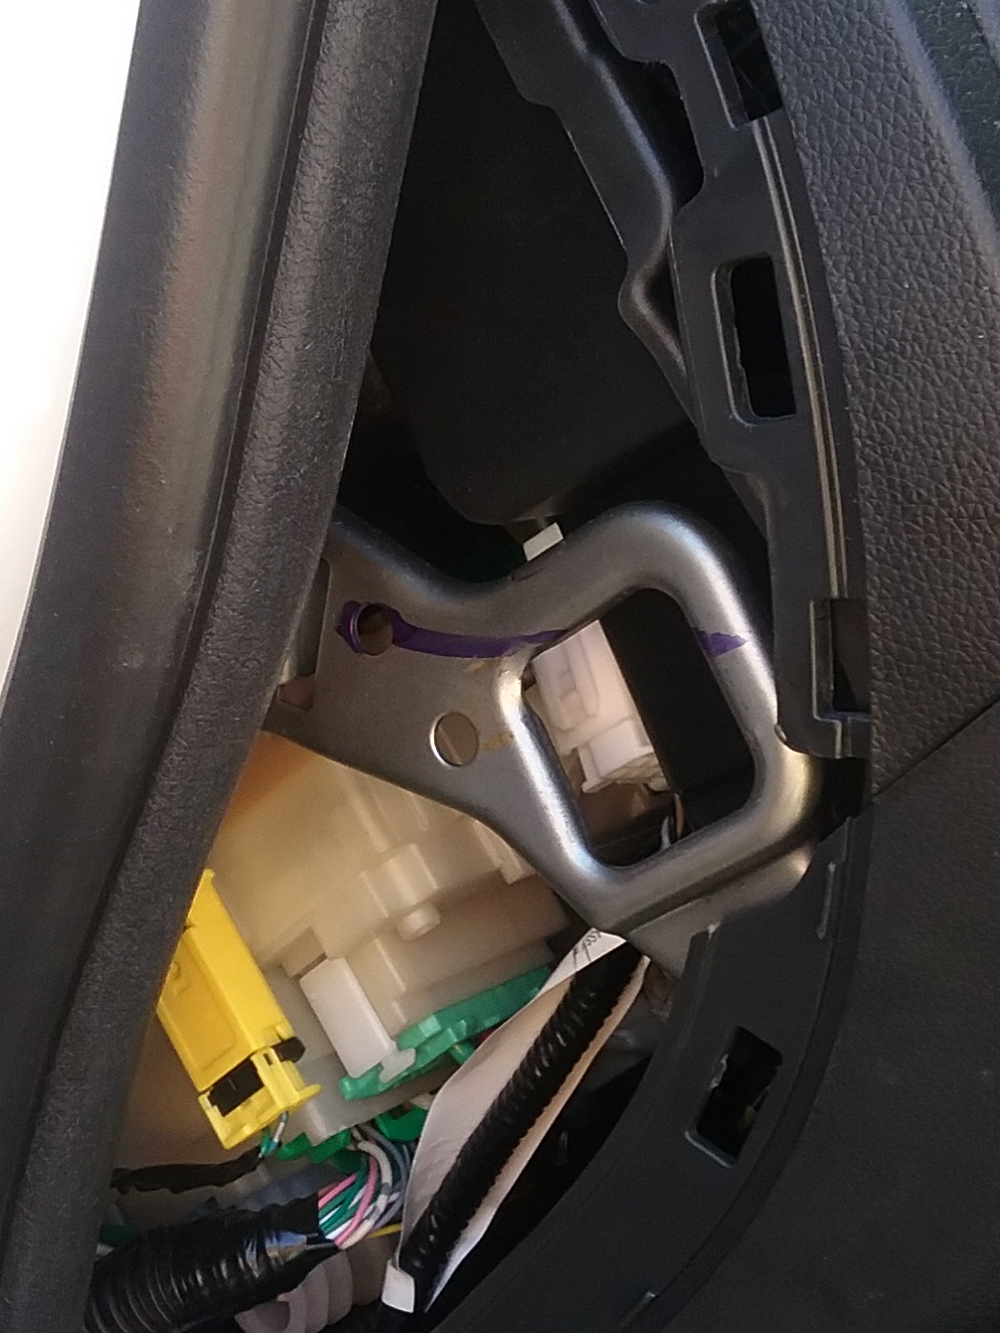 Honda Fit 2016, remove the driver's side lower. After you remove side panel by prying it up. Photo 2 by Don Tai